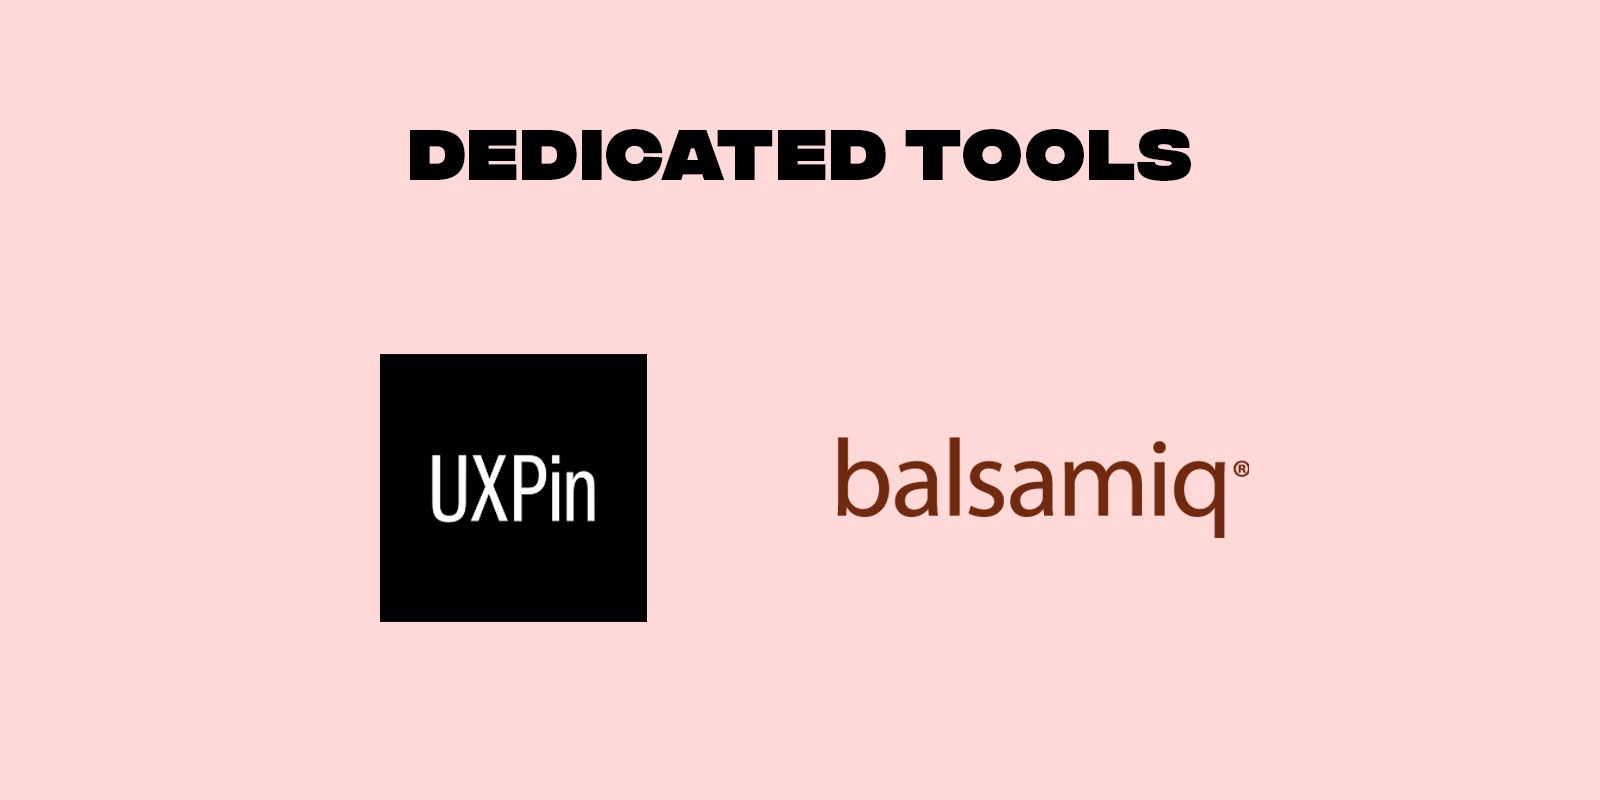 Wireframing tools UXPin and balsamiq